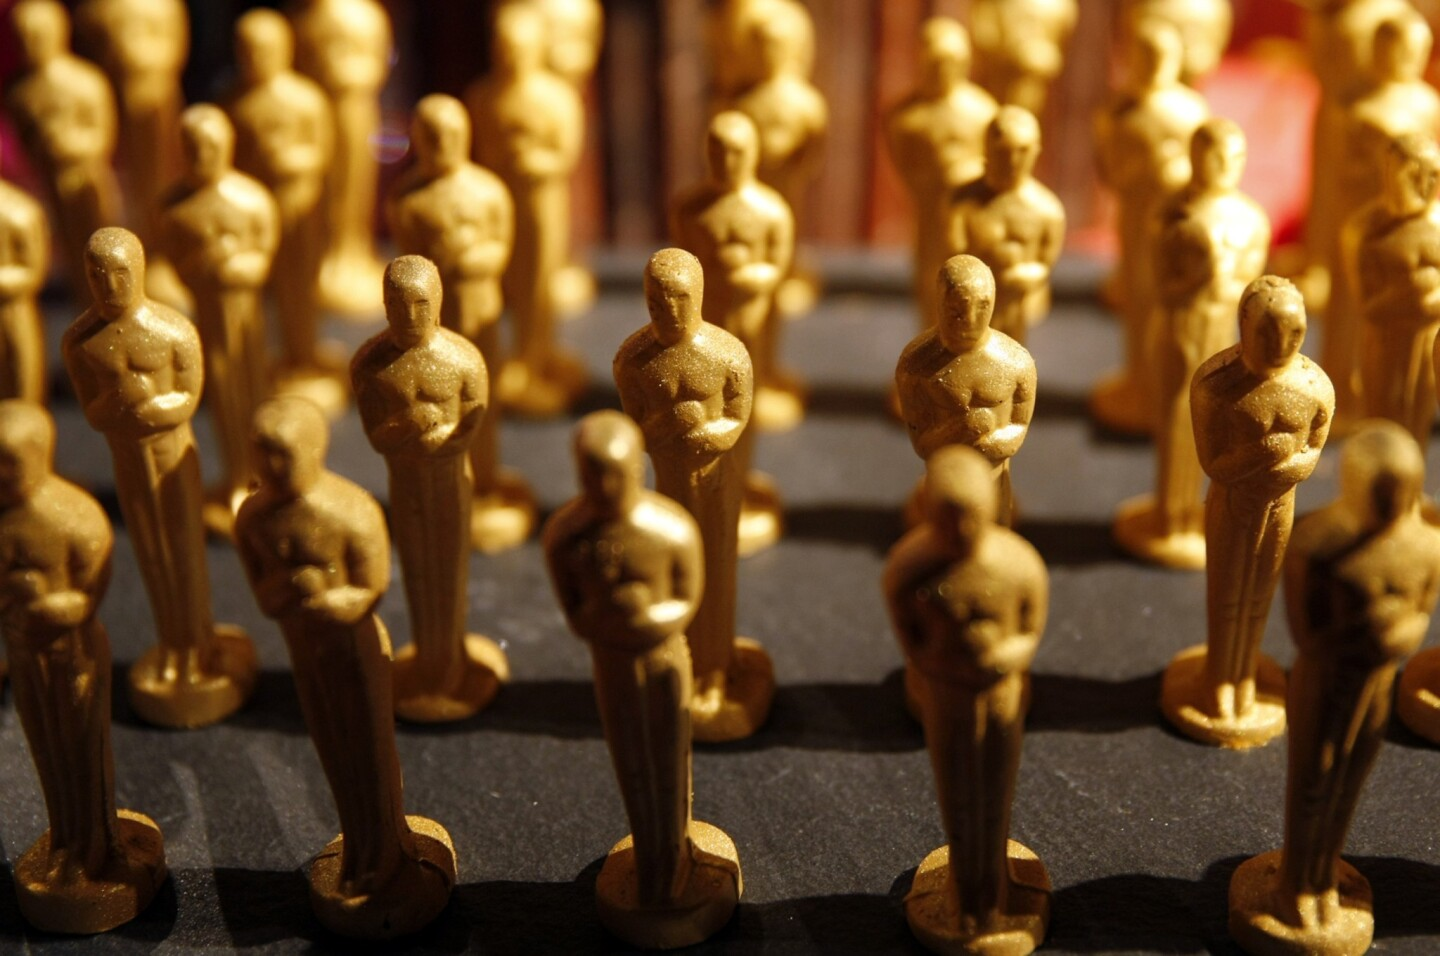 An army of chocolate Oscar statuettes stands ready to be offered at the Oscars Governors Ball.